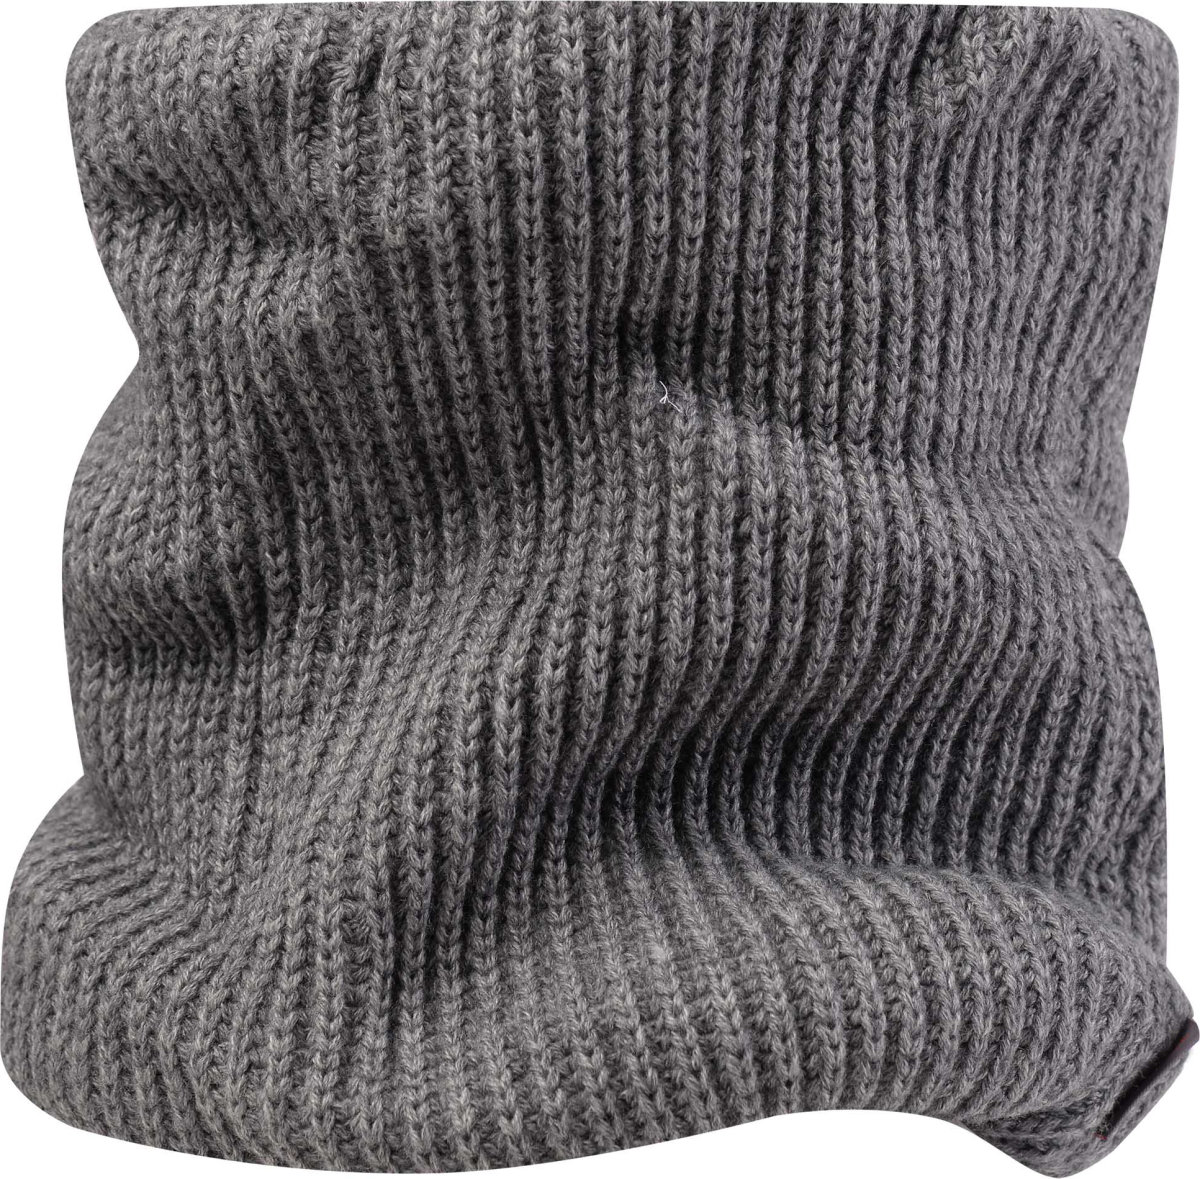 Шарф многофункциональный Buff Knitted & Polar Neckwarmer Rutger melange 4 Knitted & Polar Neckwarmer BU 117902.938.10.00